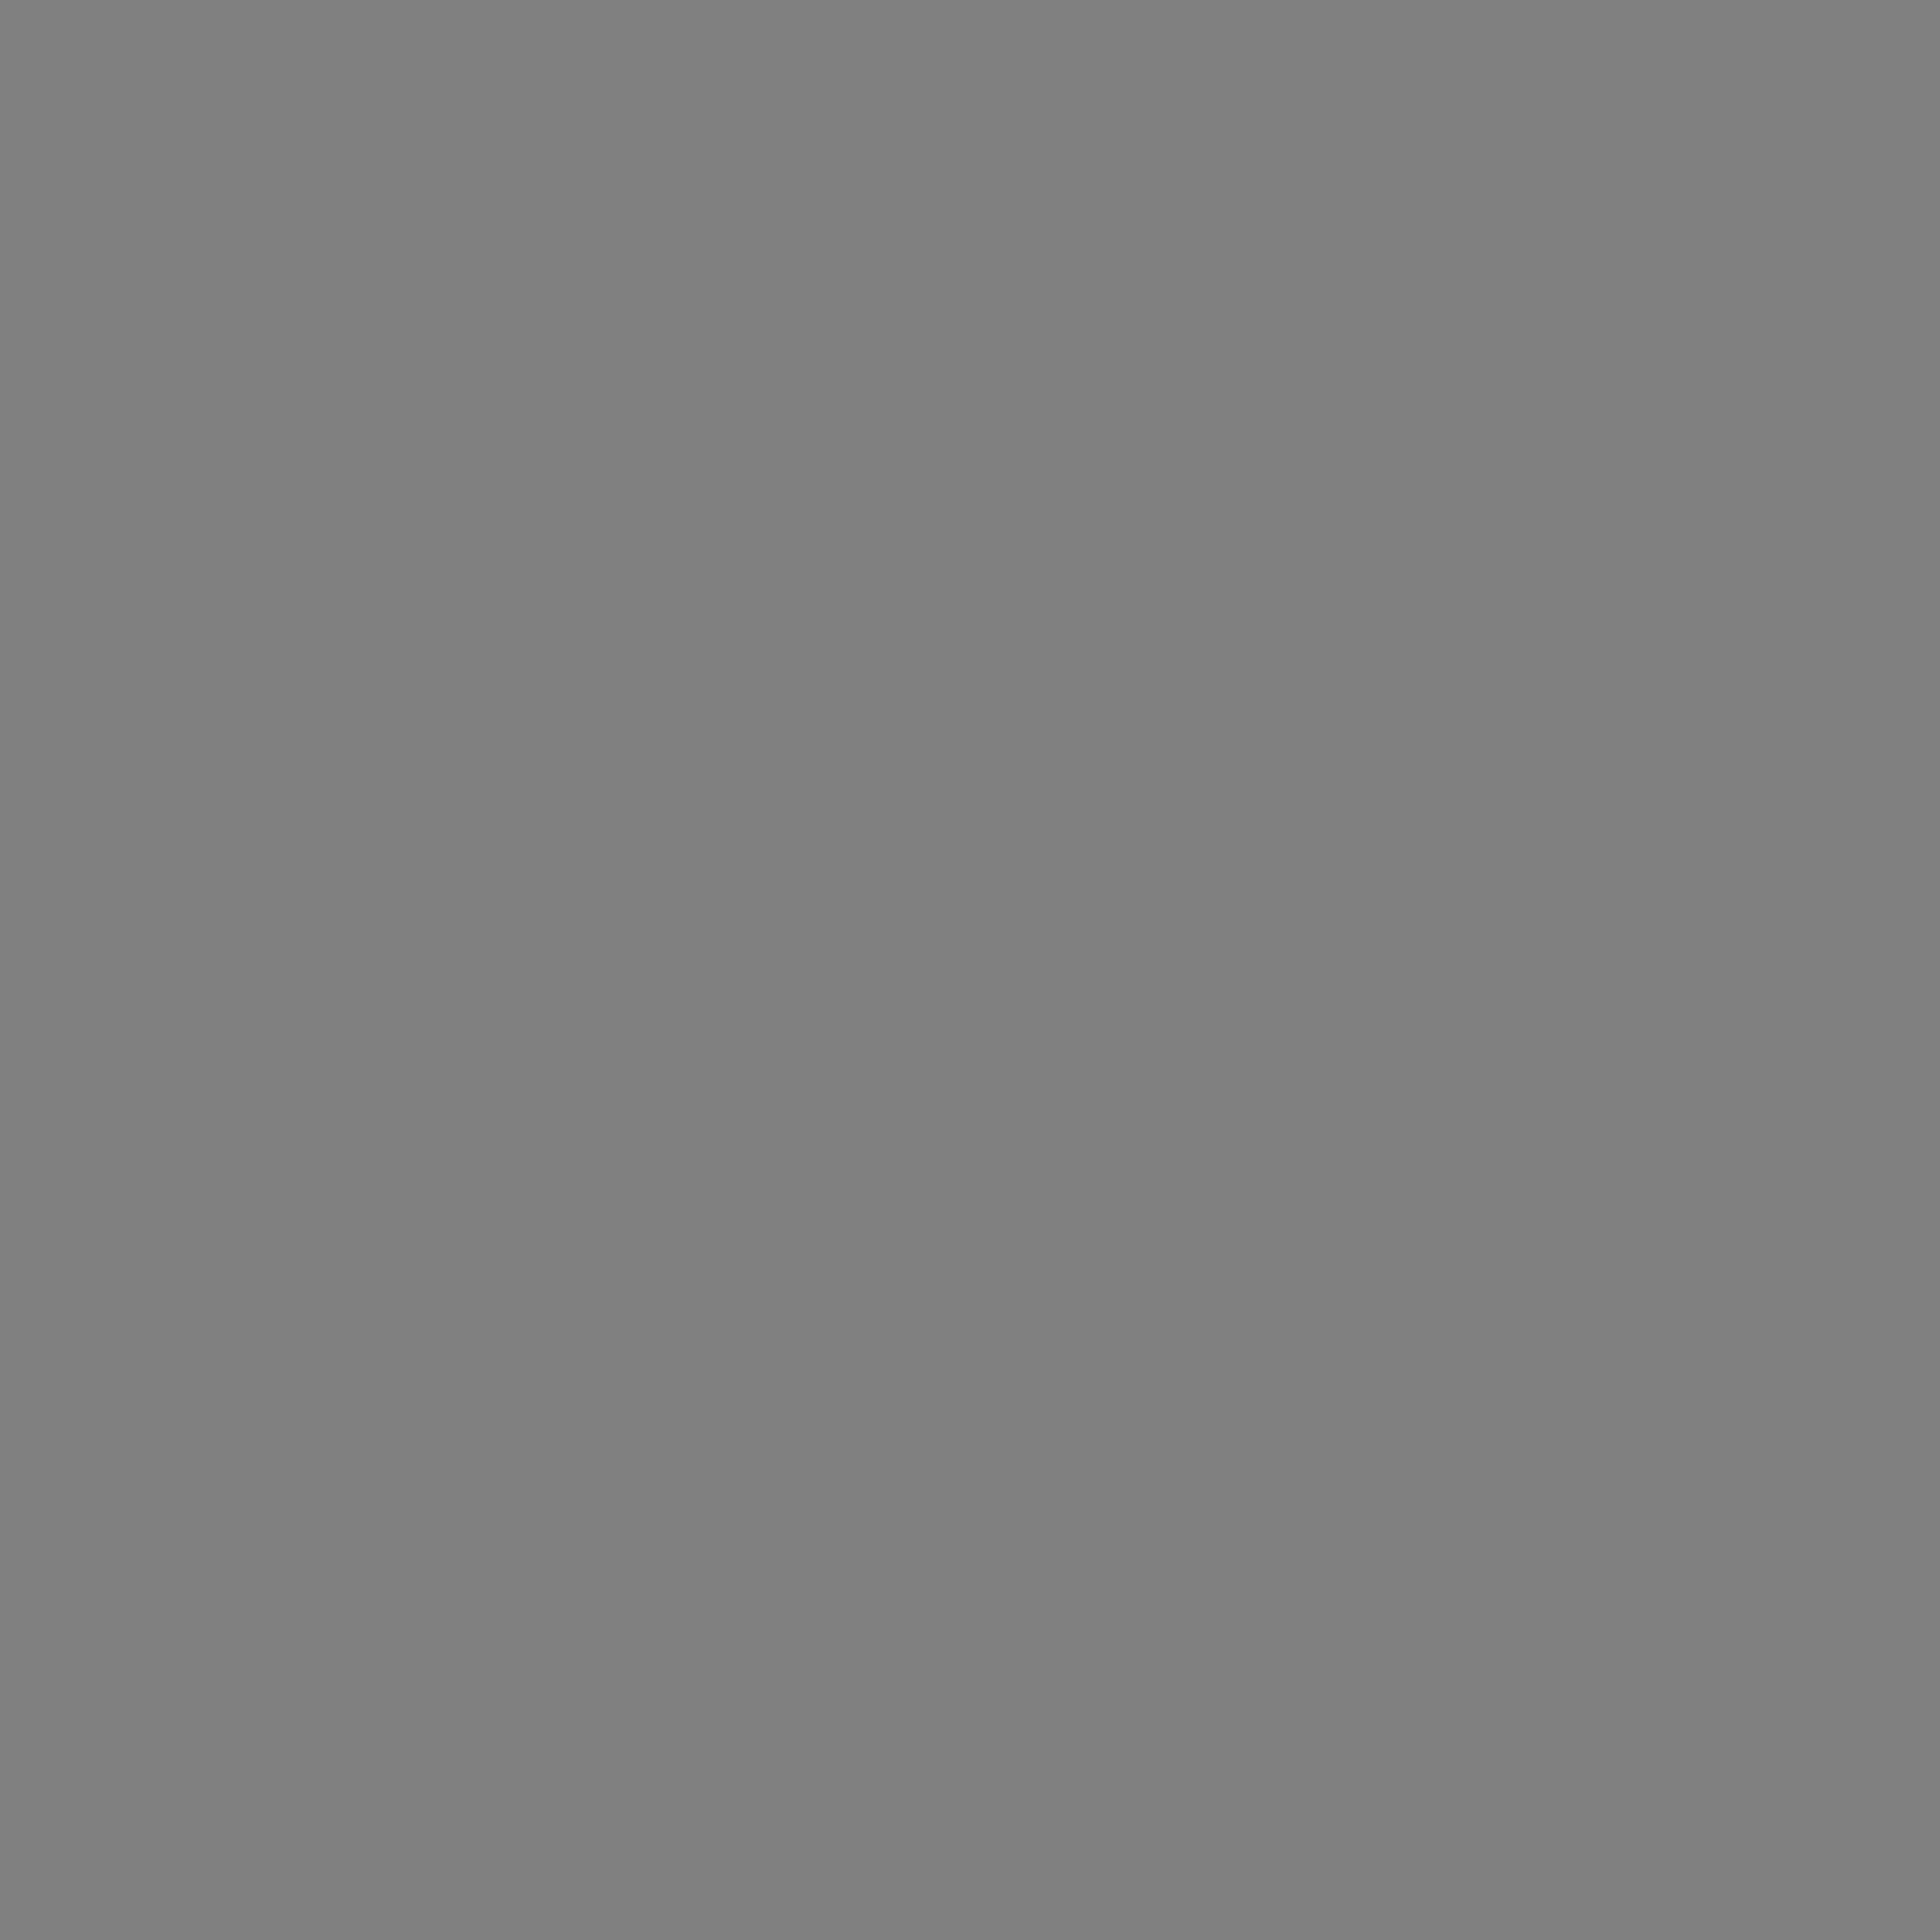 2732x2732 Gray Web Gray Solid Color Background